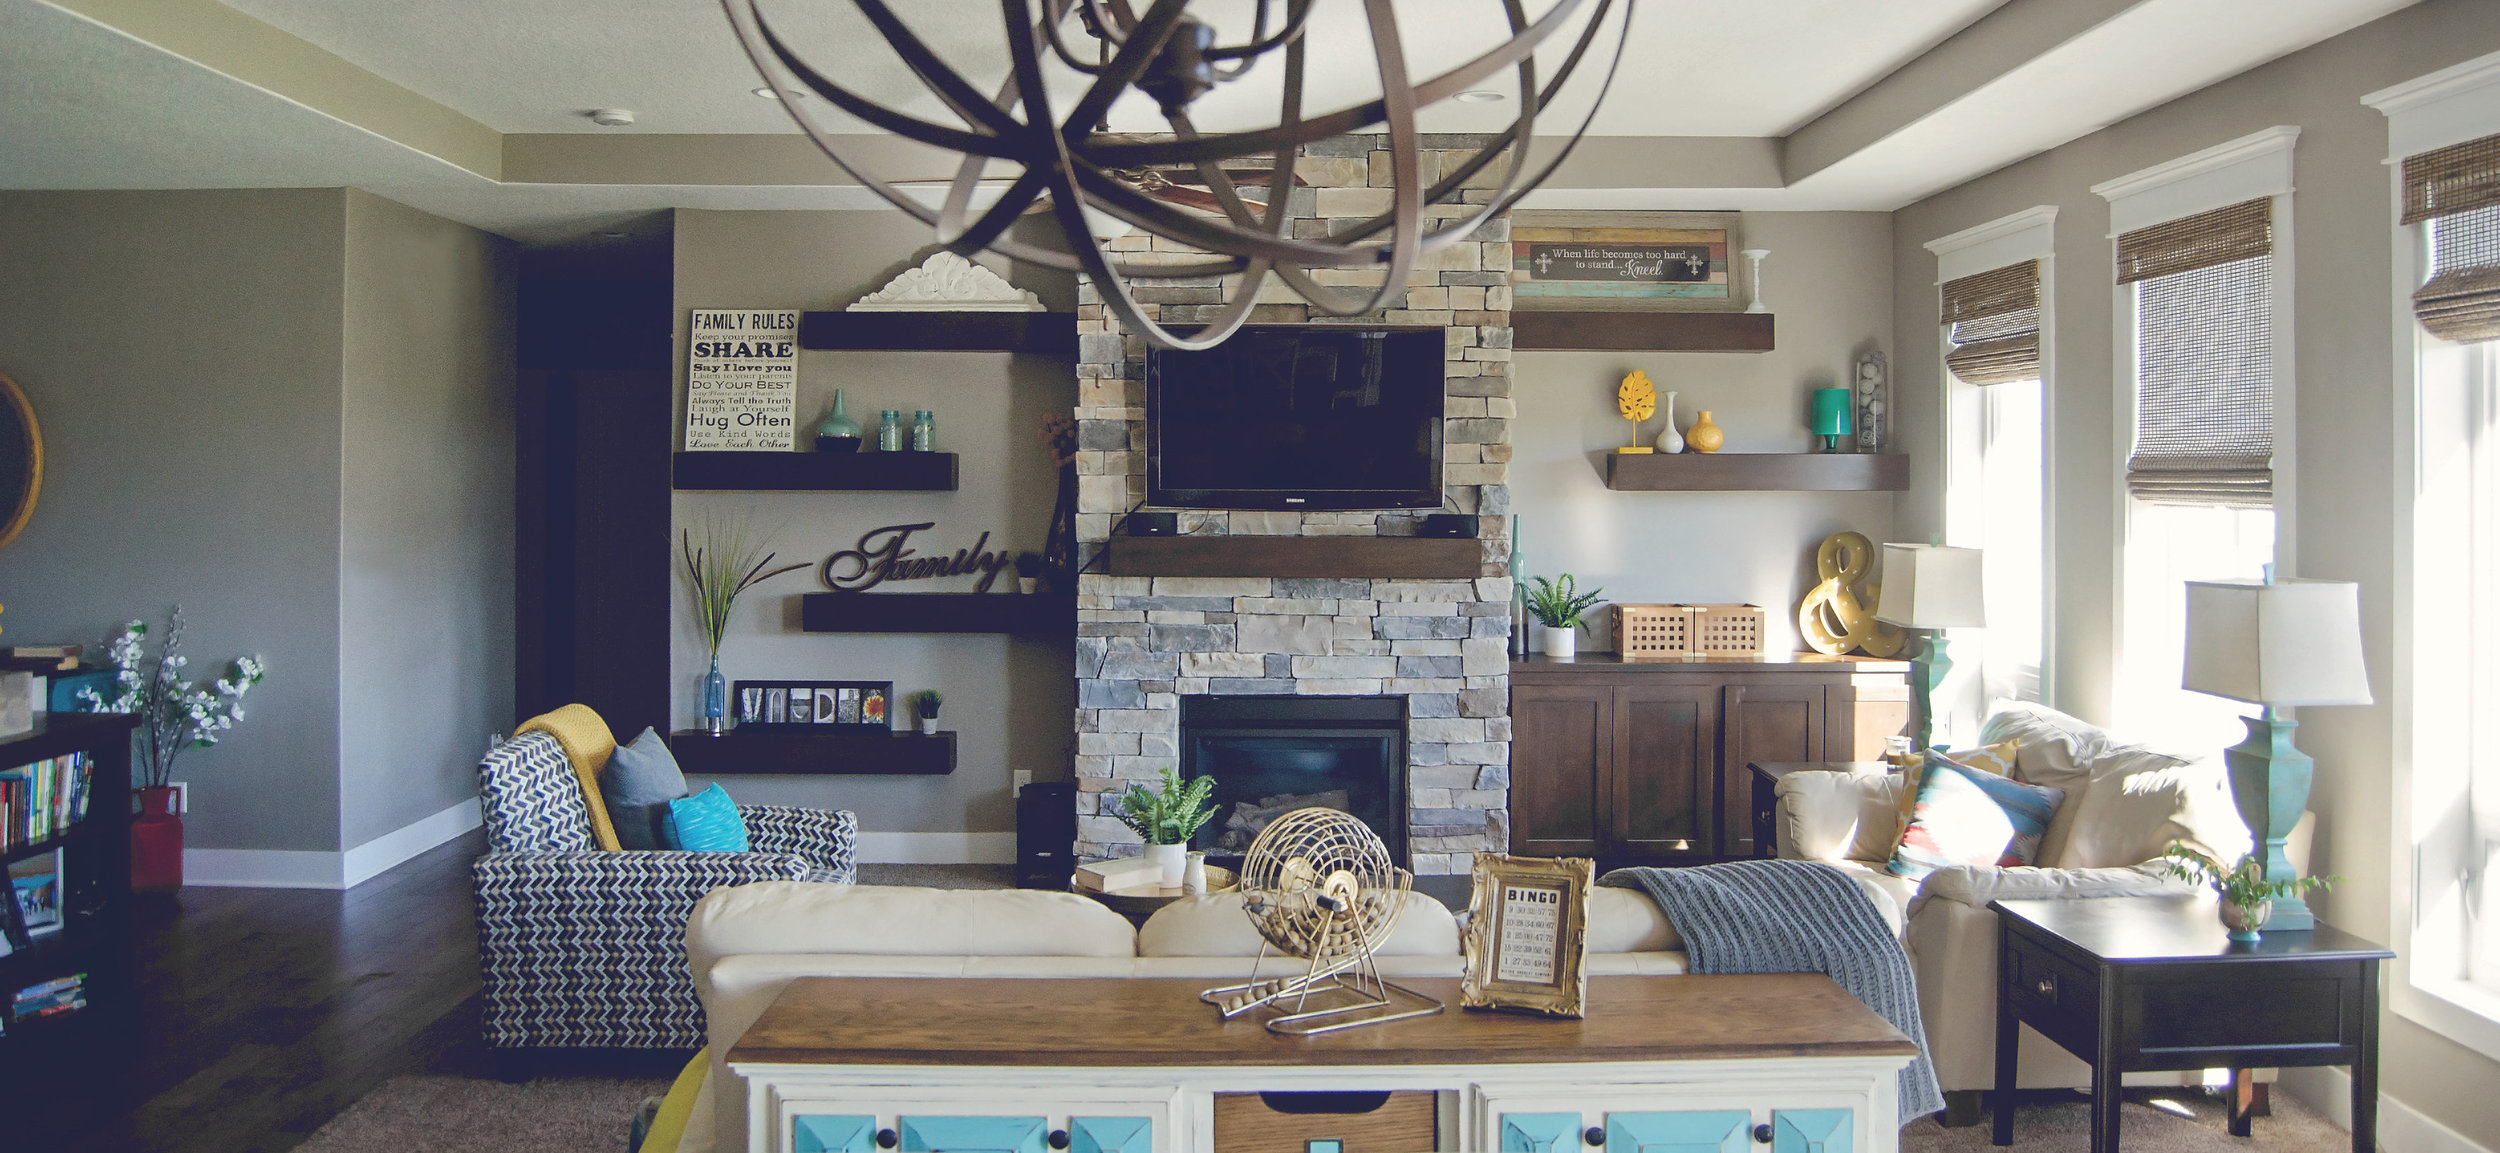 Living room style with pops of turquoise and yellow. || RustopiaConsulting.com